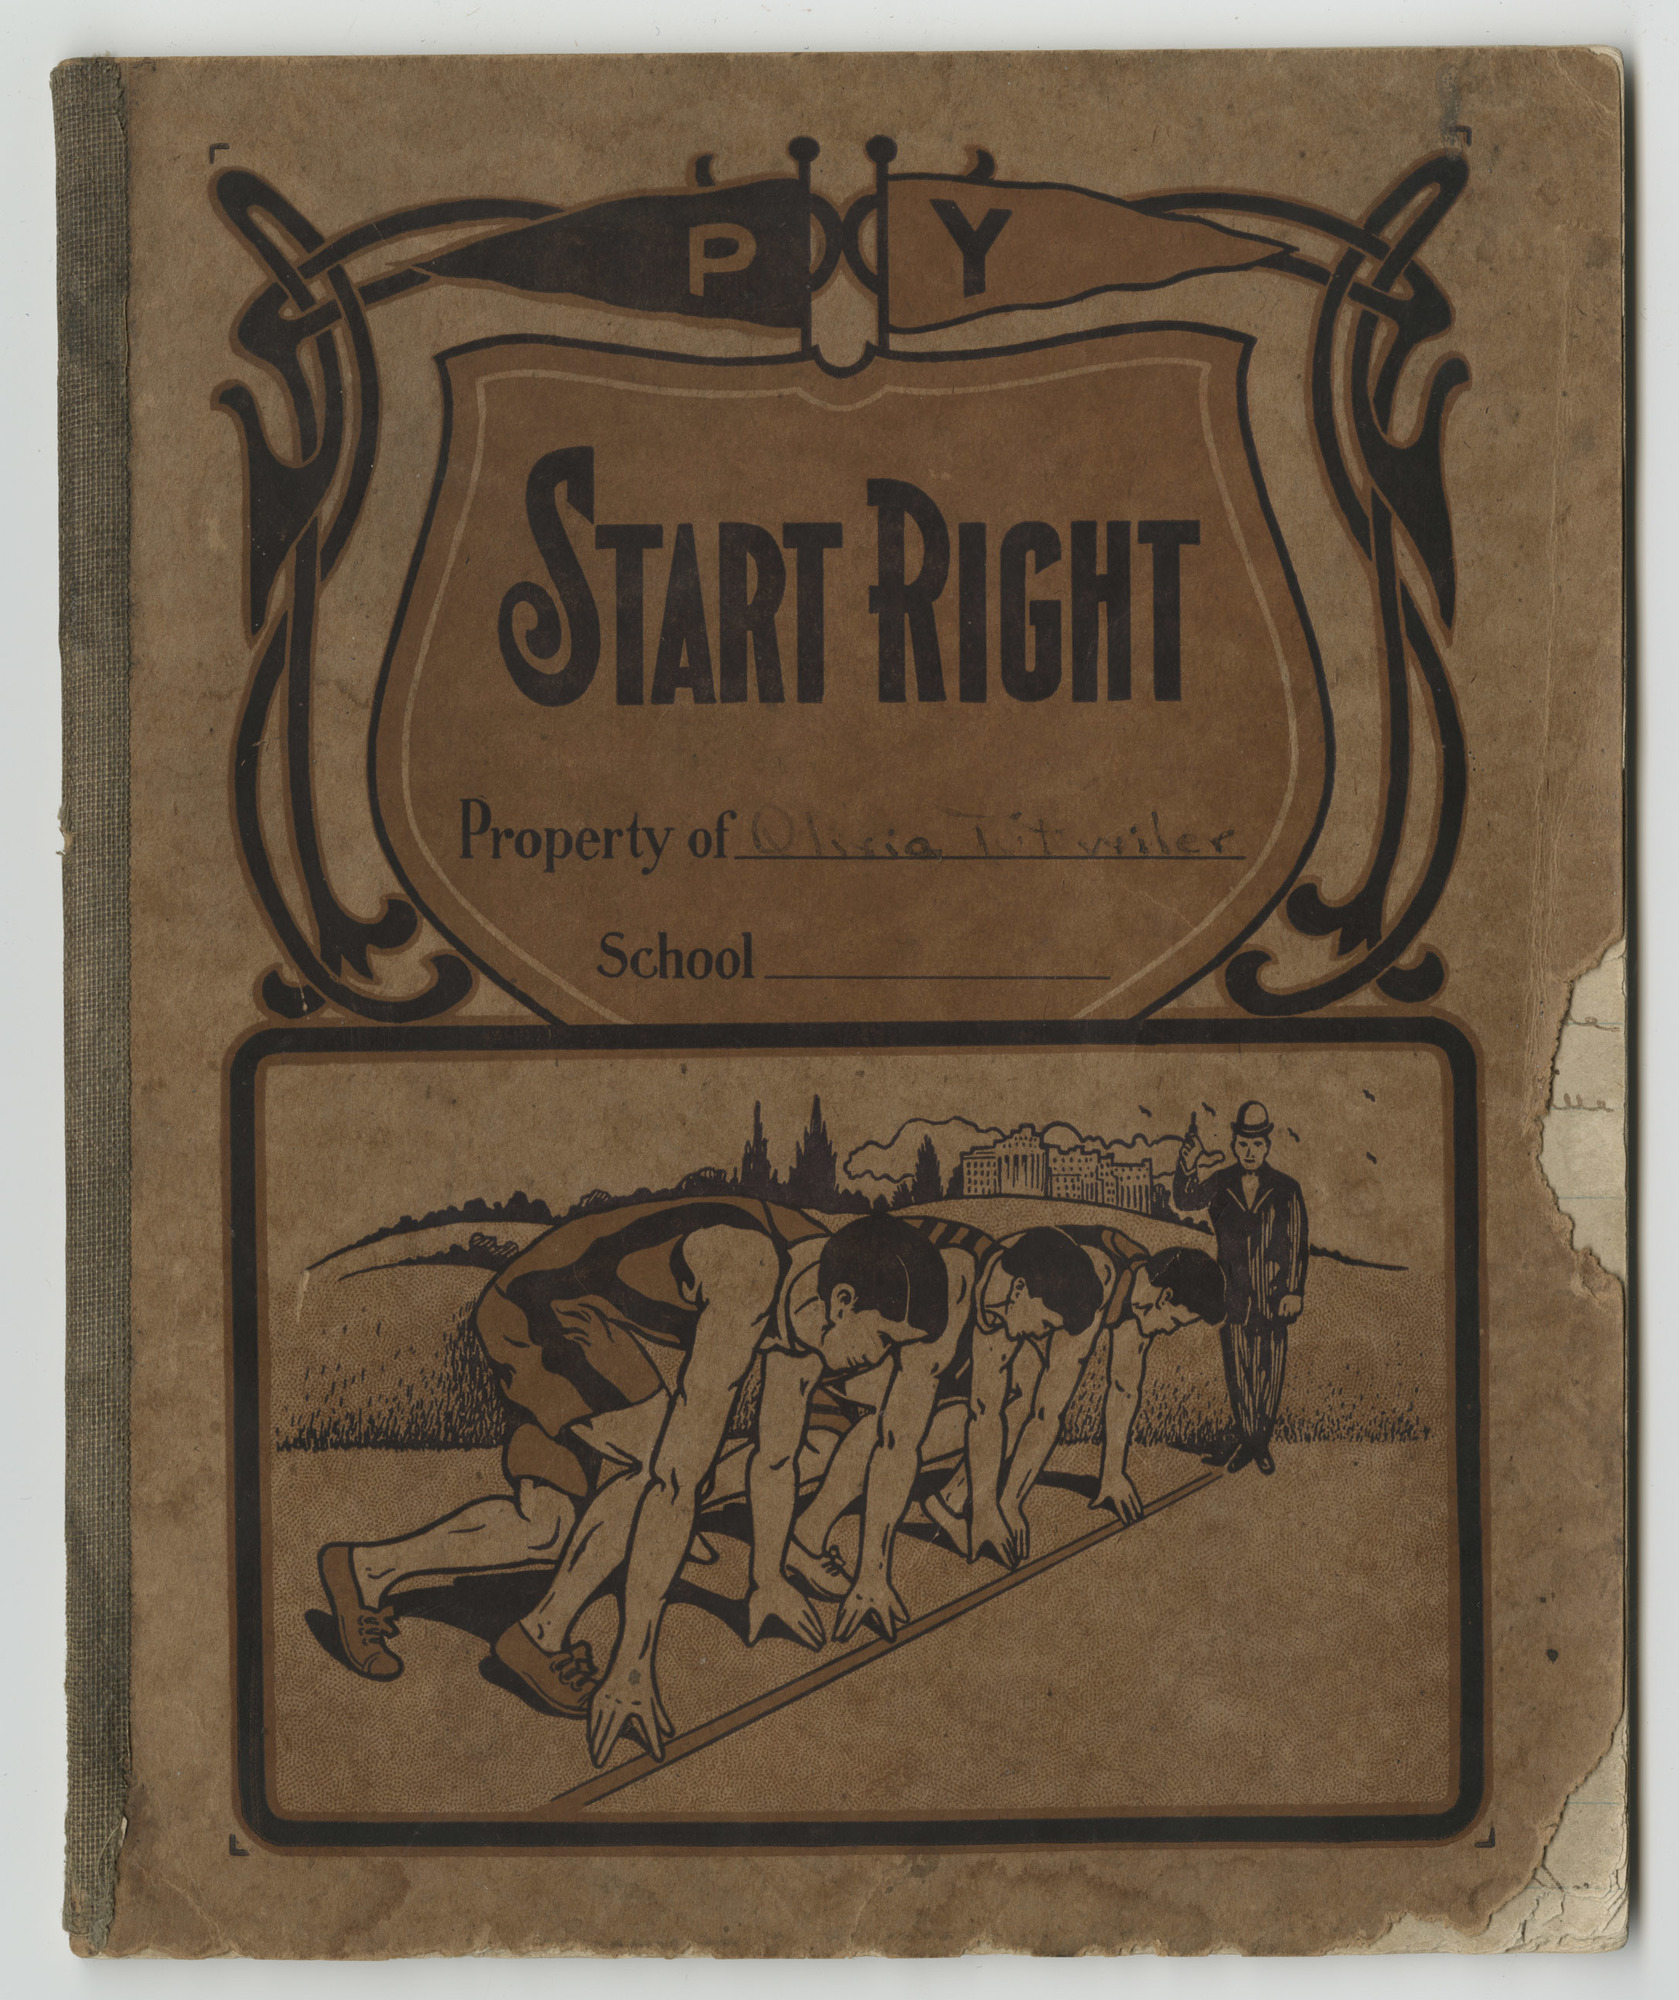 Ms2016-004__HillOliviaTutwiler_diary_1919_FrontCover.jpg